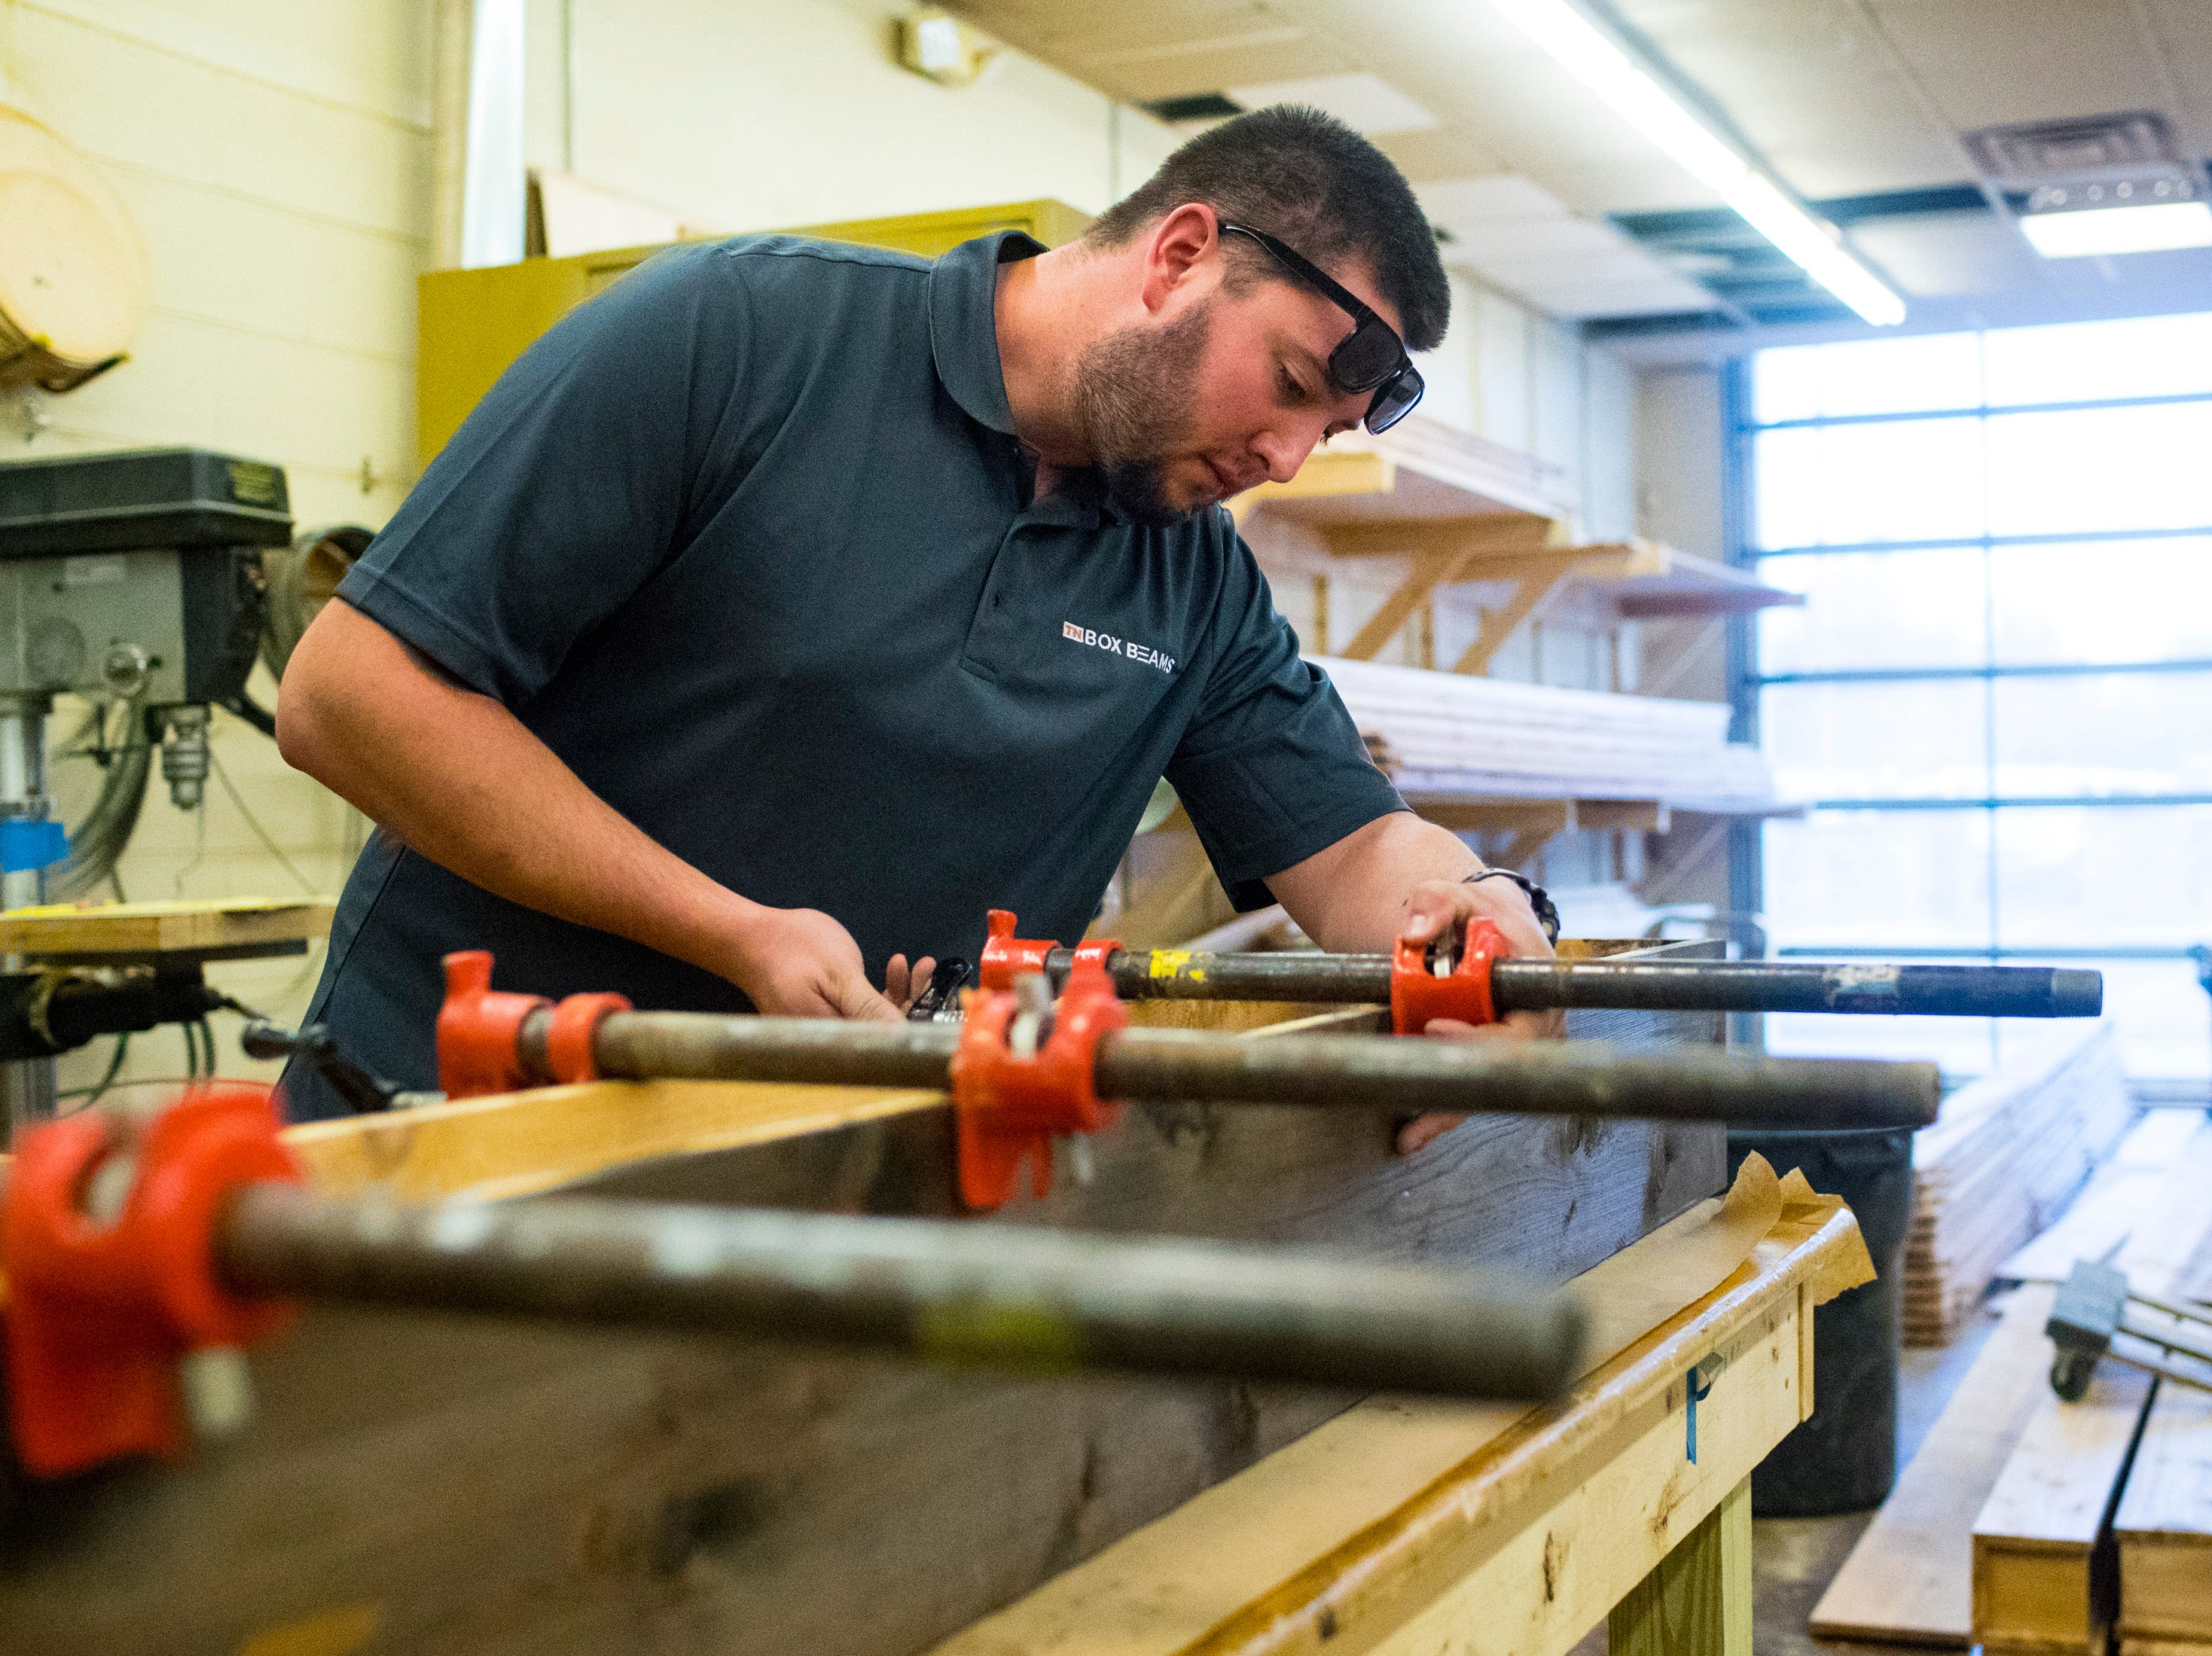 Colin Hemberg works on a beam at TN Box Beams in Franklin on Friday, Nov. 9, 2018. TN Box Beams will be featured on the HGTV show Property Brothers Buying + Selling on Nov. 14.